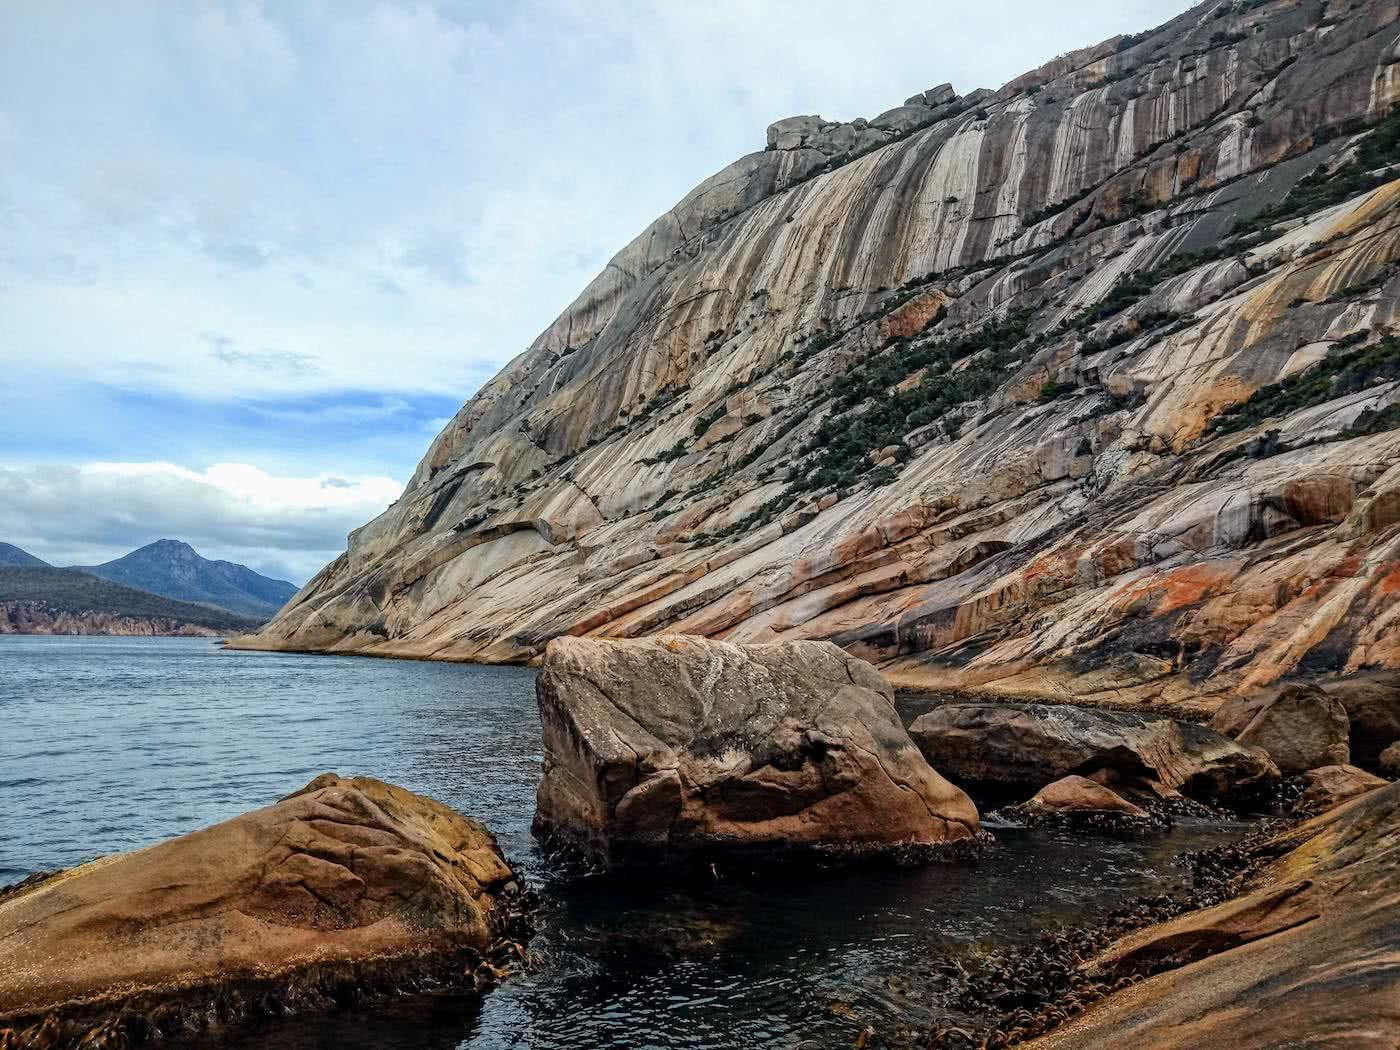 Searching for redemption on the Freycinet Sea Level Traverse, by Polly Barr, sunrise, flow stone